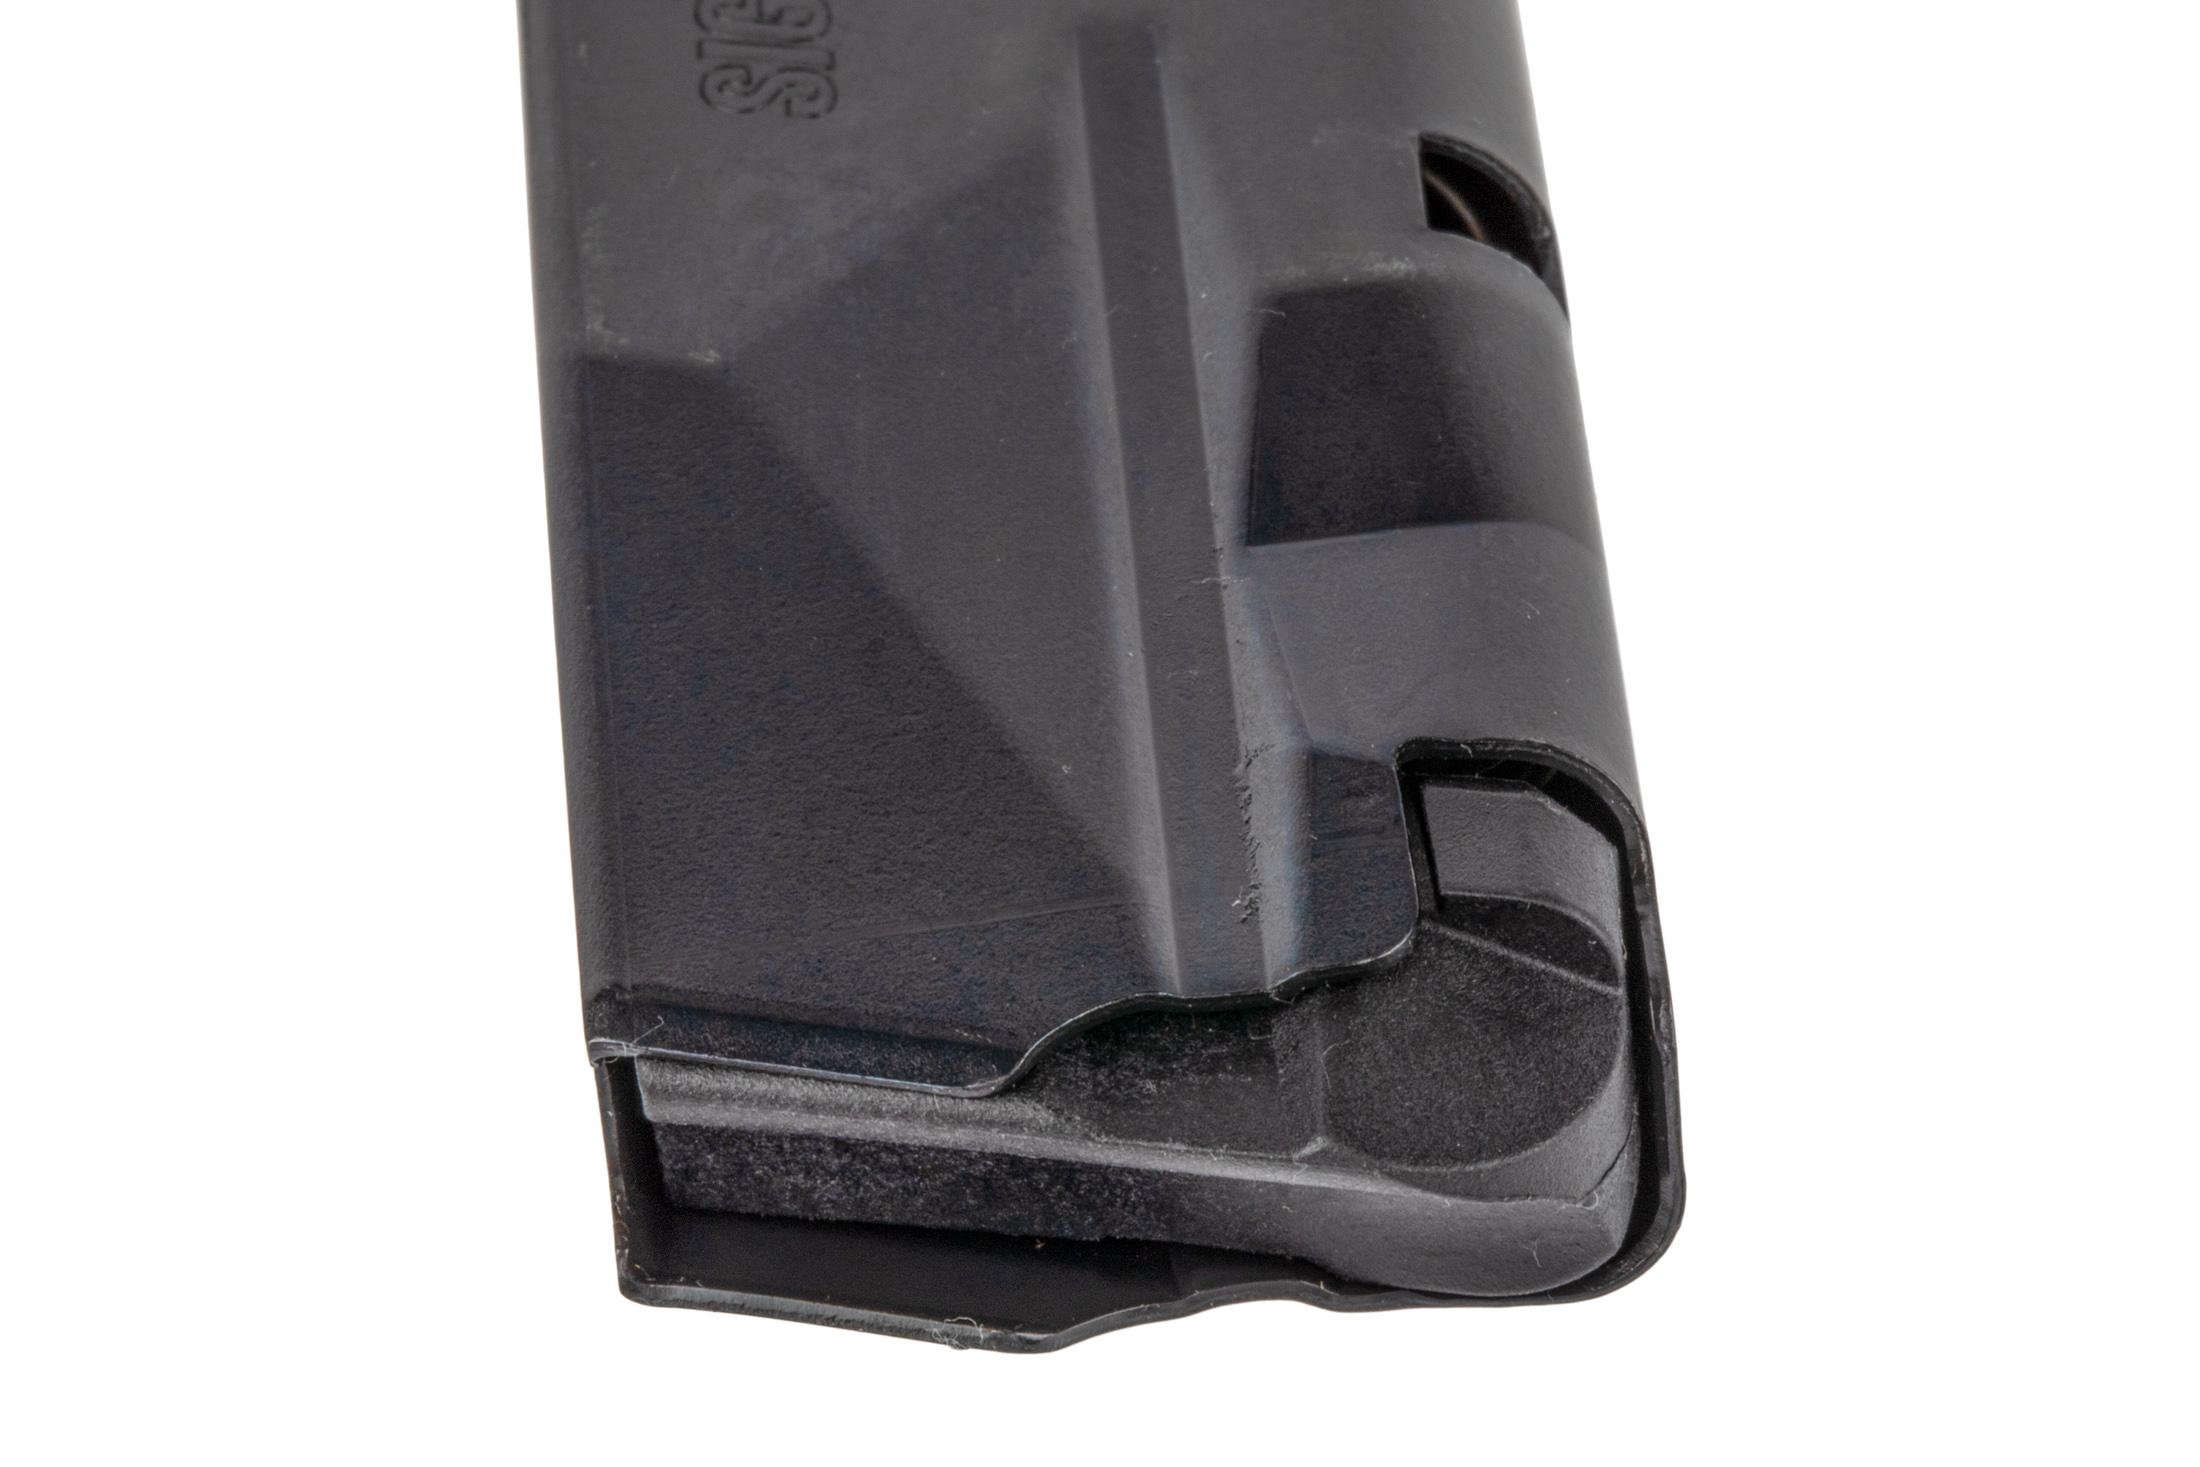 The Sig P365 magazine holds 15 rounds of 9mm ammunition